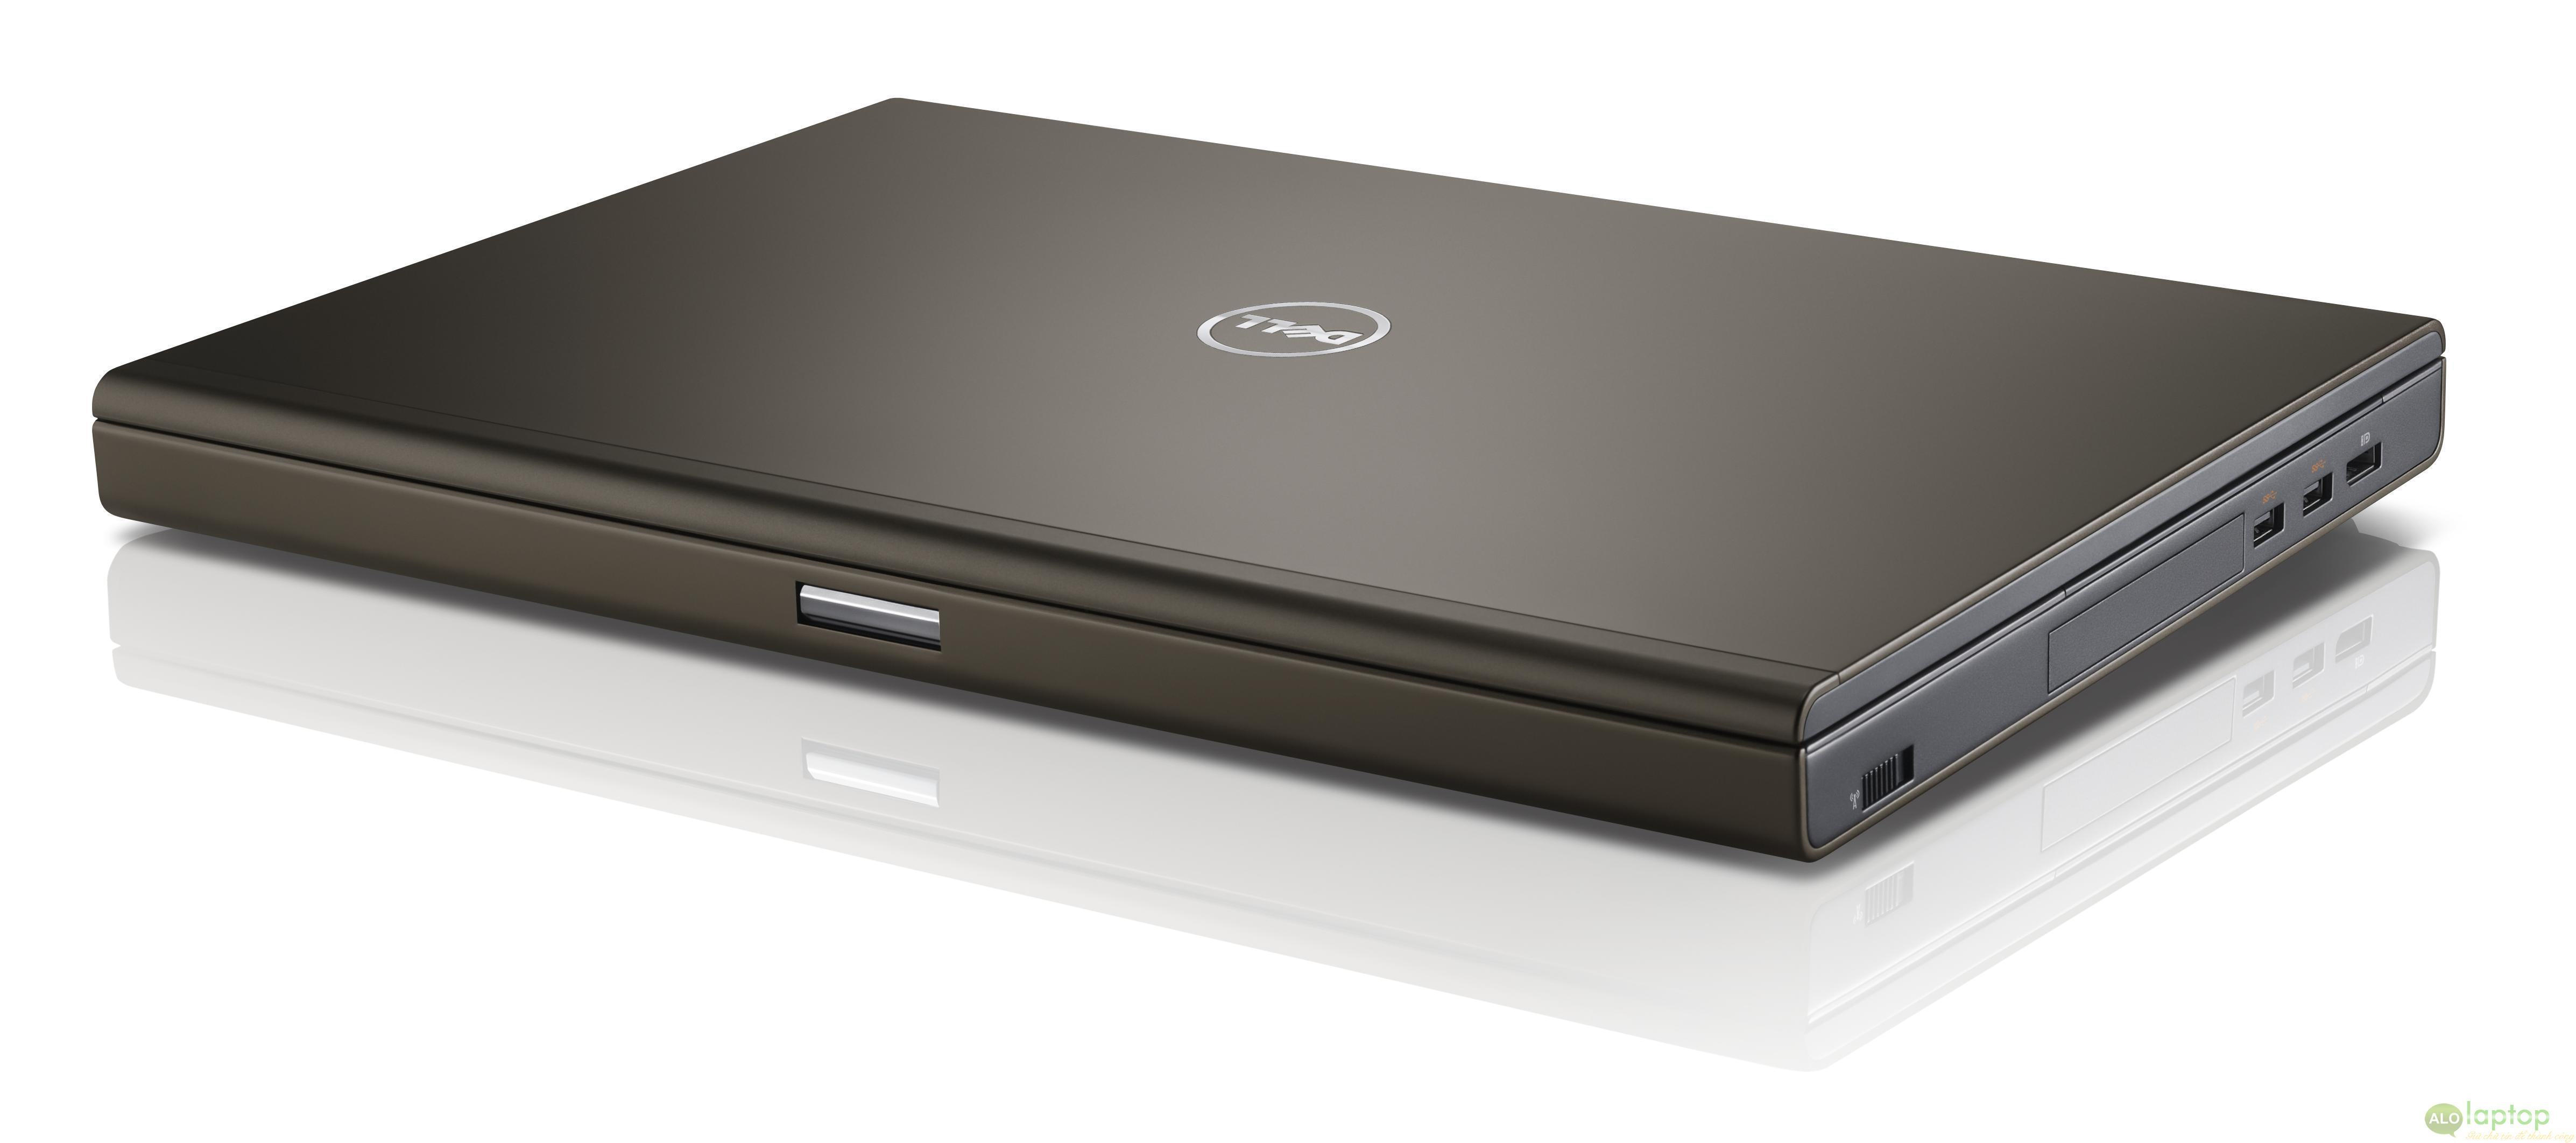 cua-hang-ban-laptop-dell-precision-m4600-tai-ha-noi